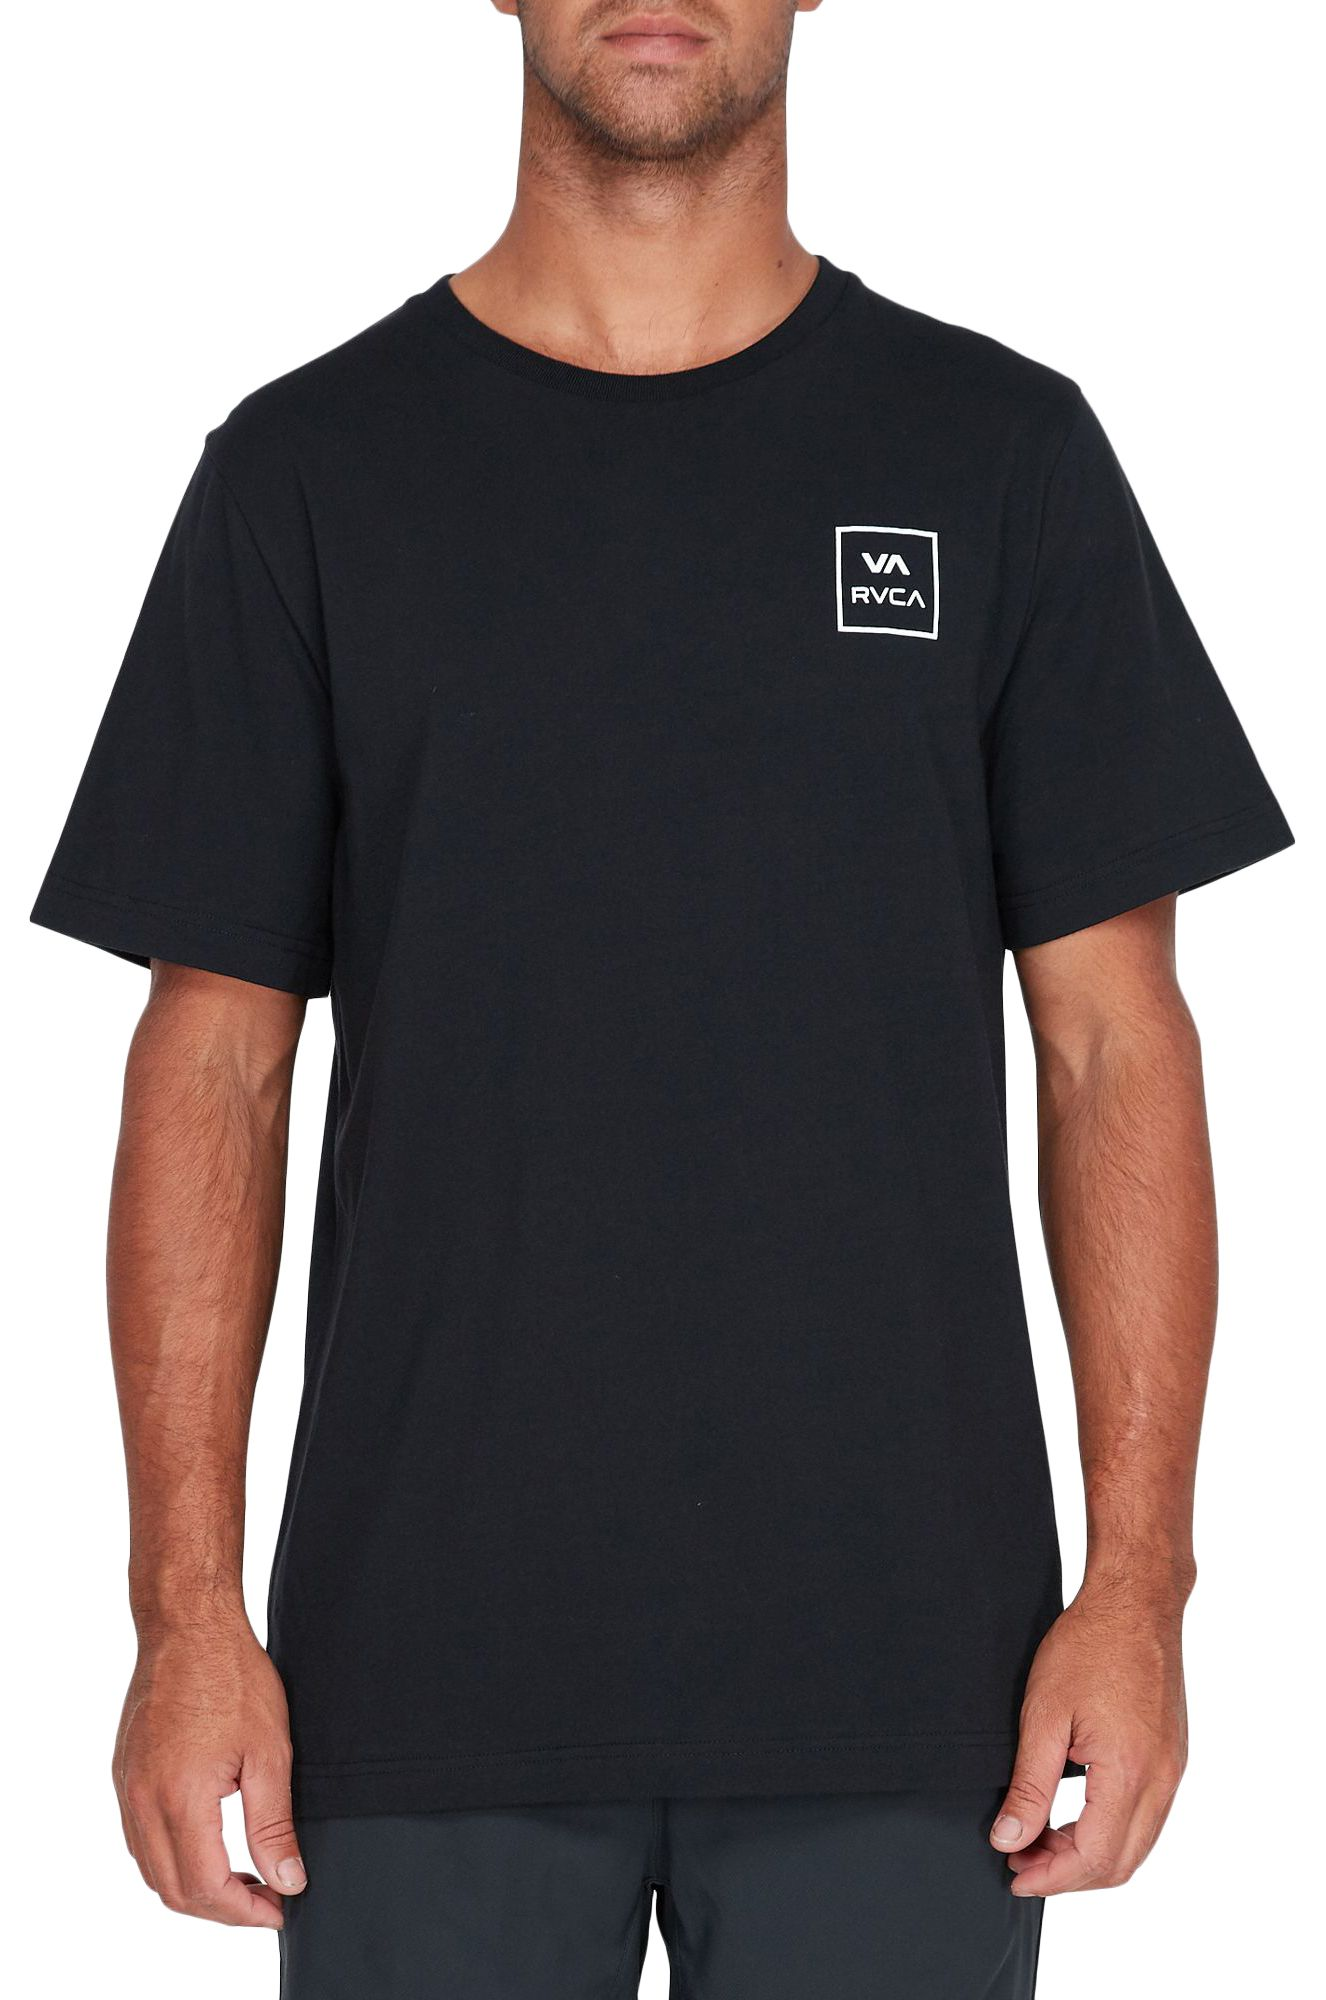 T-Shirt RVCA VA ALL THE WAYS SS T Black